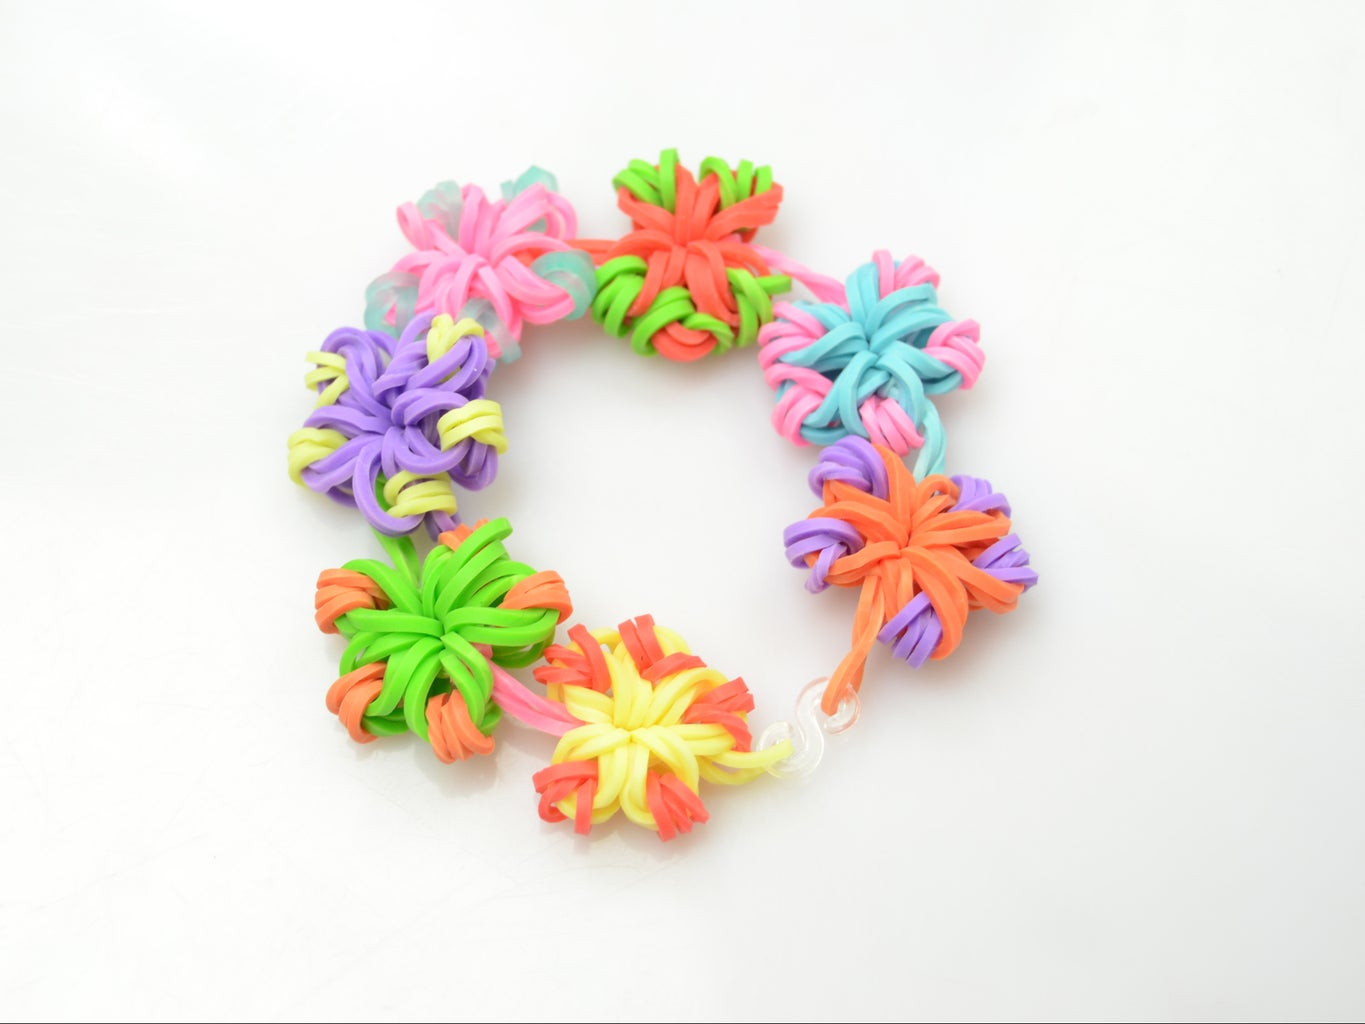 Final Look of Beautiful  Candy Color Flower Loom Band Bracelet!